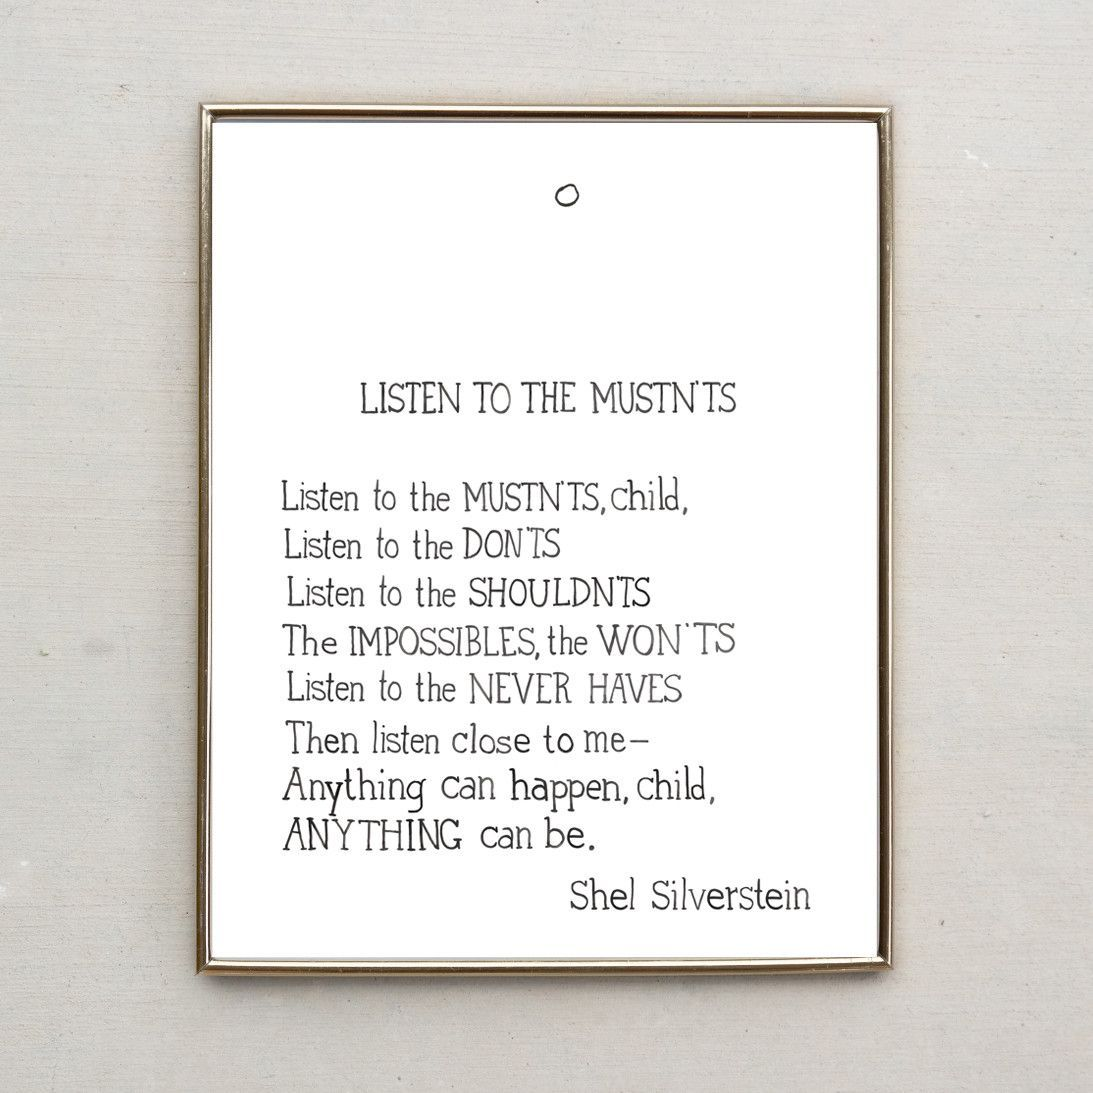 Shel Silverstein Poem Listen To The Mustnts Hand Lettered Water Color Print